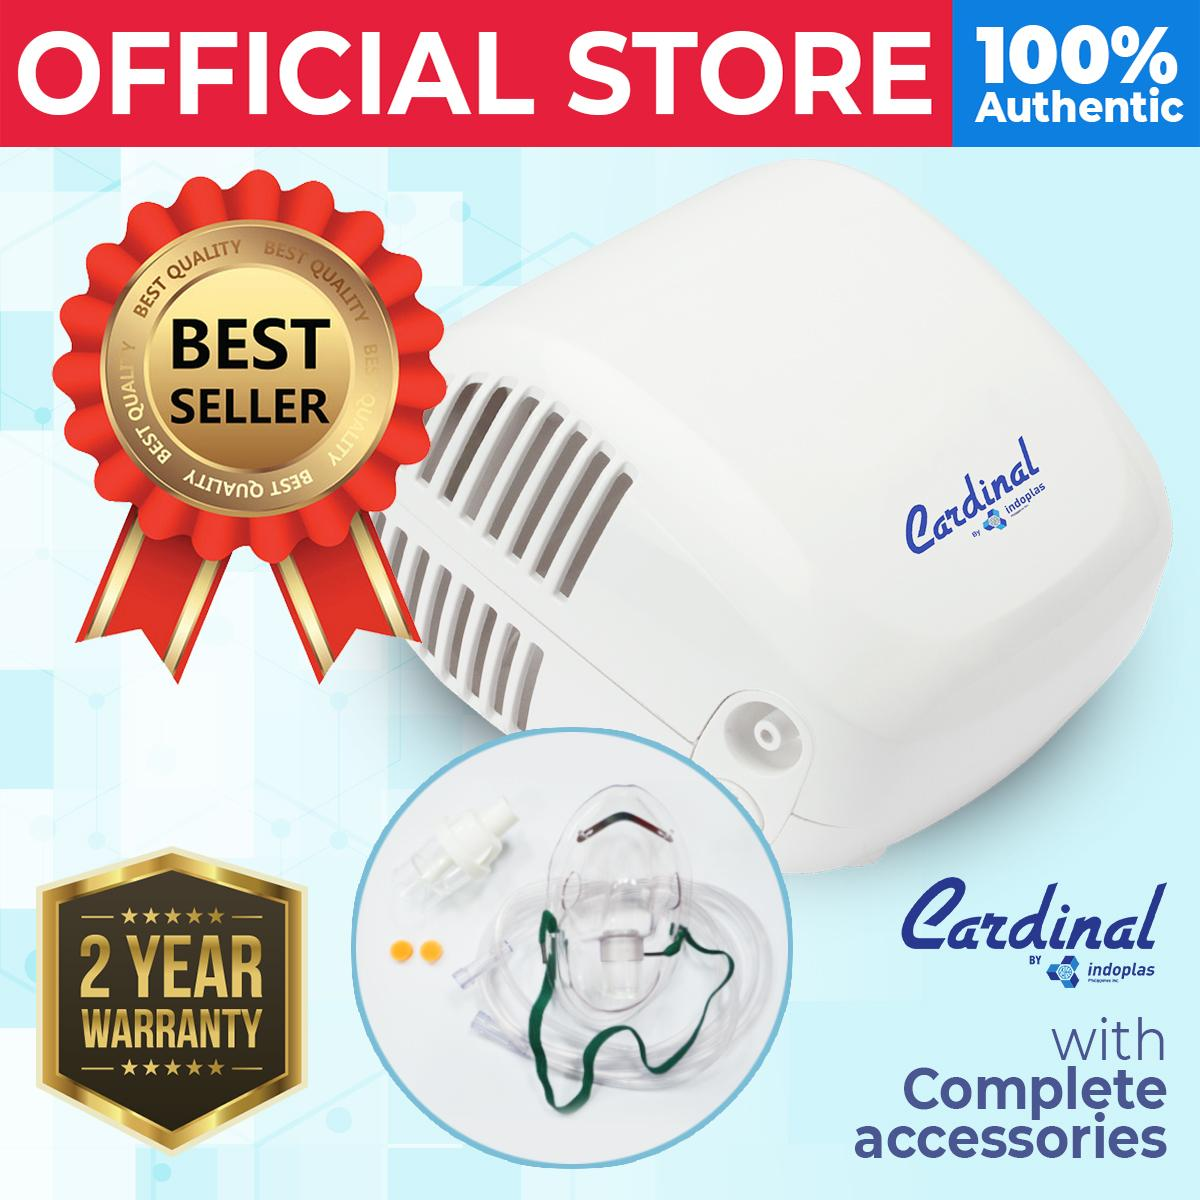 Cardinal Handyneb Sprint Nebulizer With Complete Accessories By Medical Supplies Philippines.